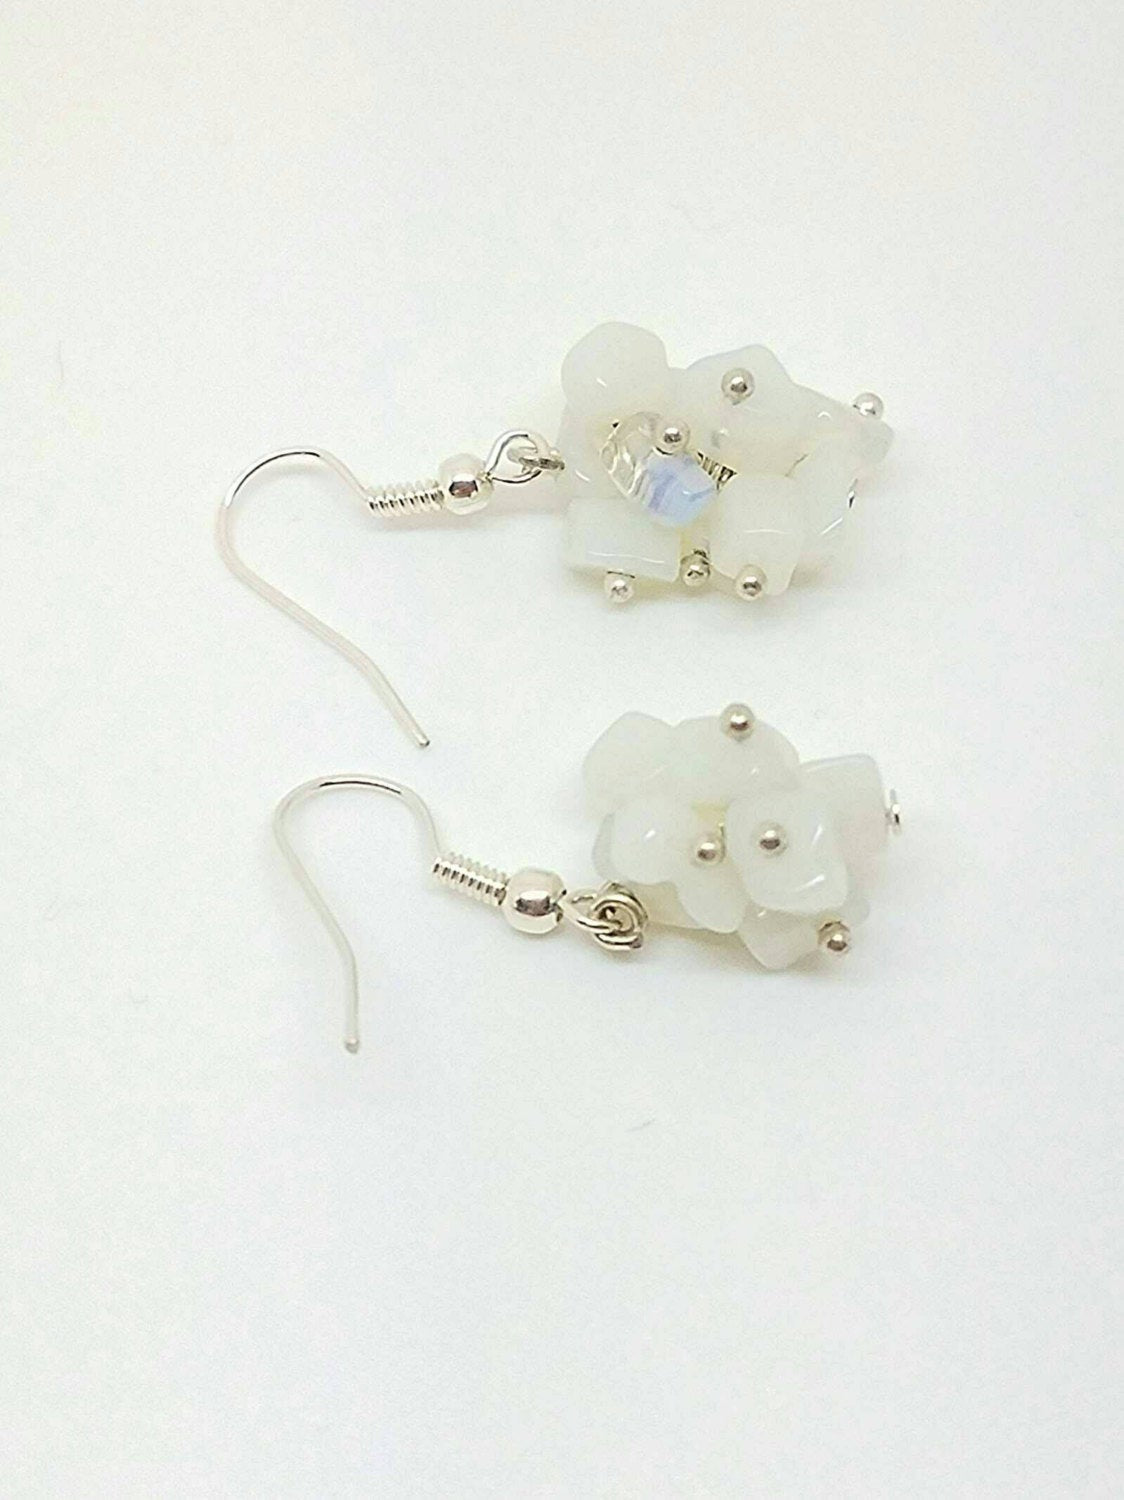 Clear white earrings, white earrings, white earring, white accessories, white bride earrings, dangly white earring, earrings white,